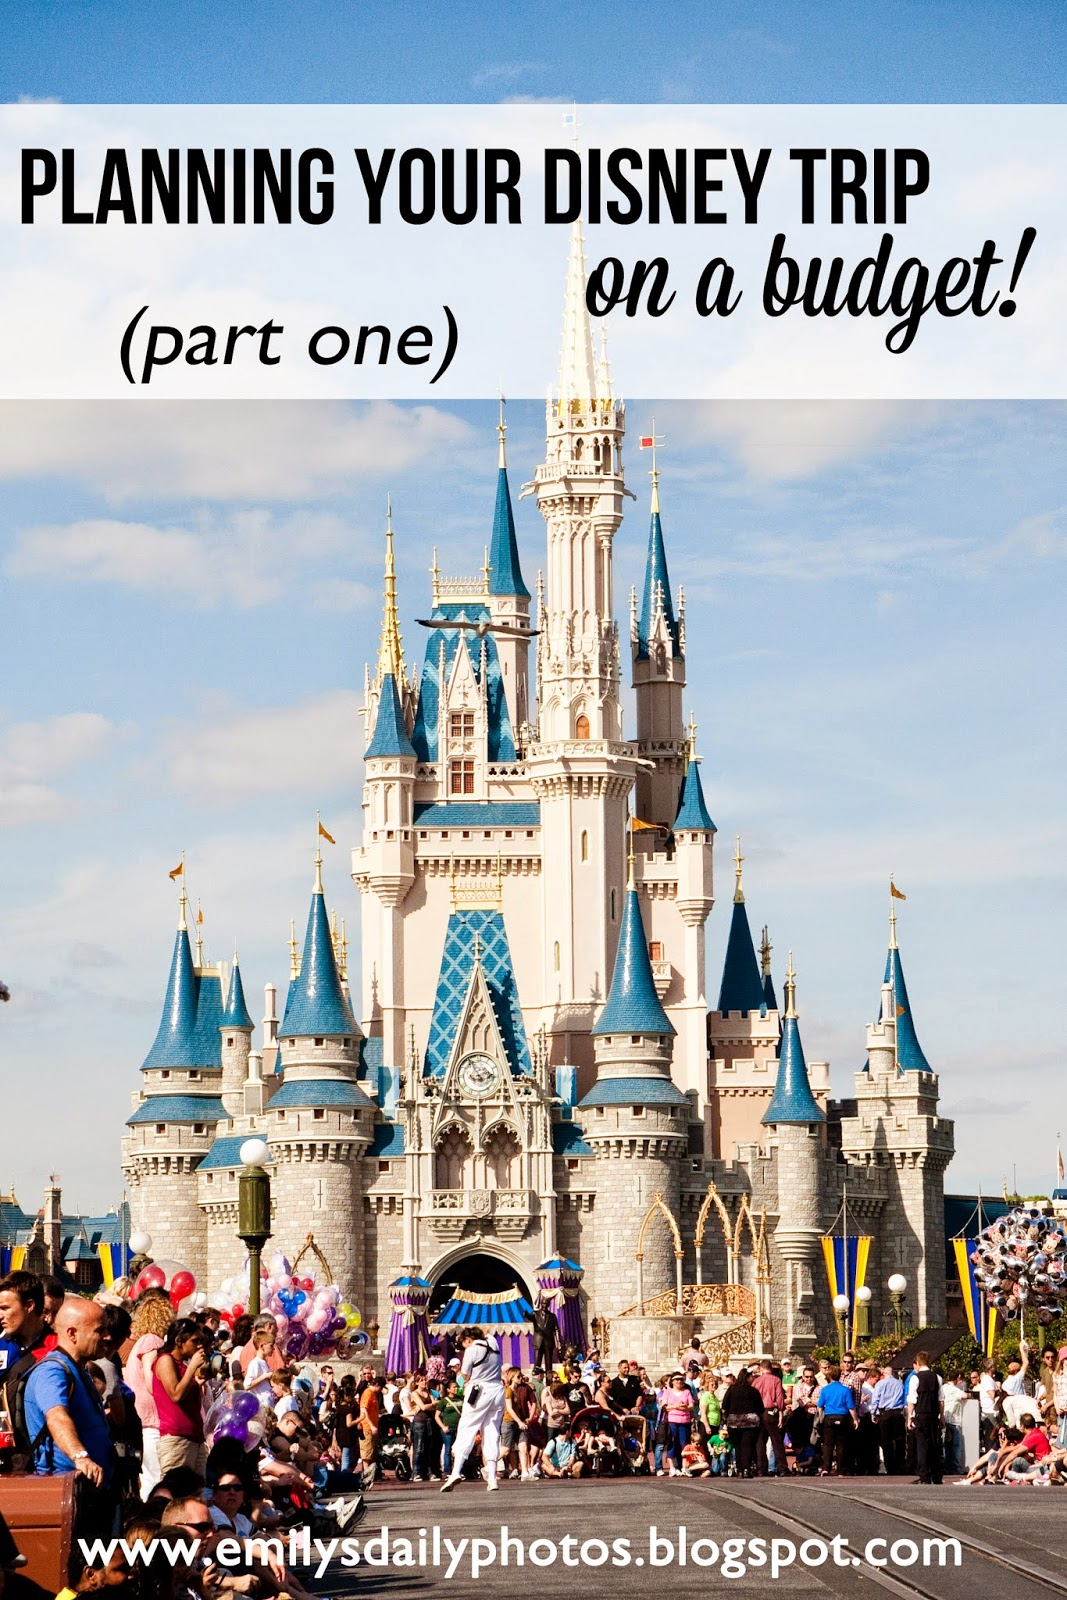 Mar 22,  · Also, Disneyland and Disney World often run hotel and vacation package specials. Compare Hotel Rates. Compare on-site and off-site hotel rates.